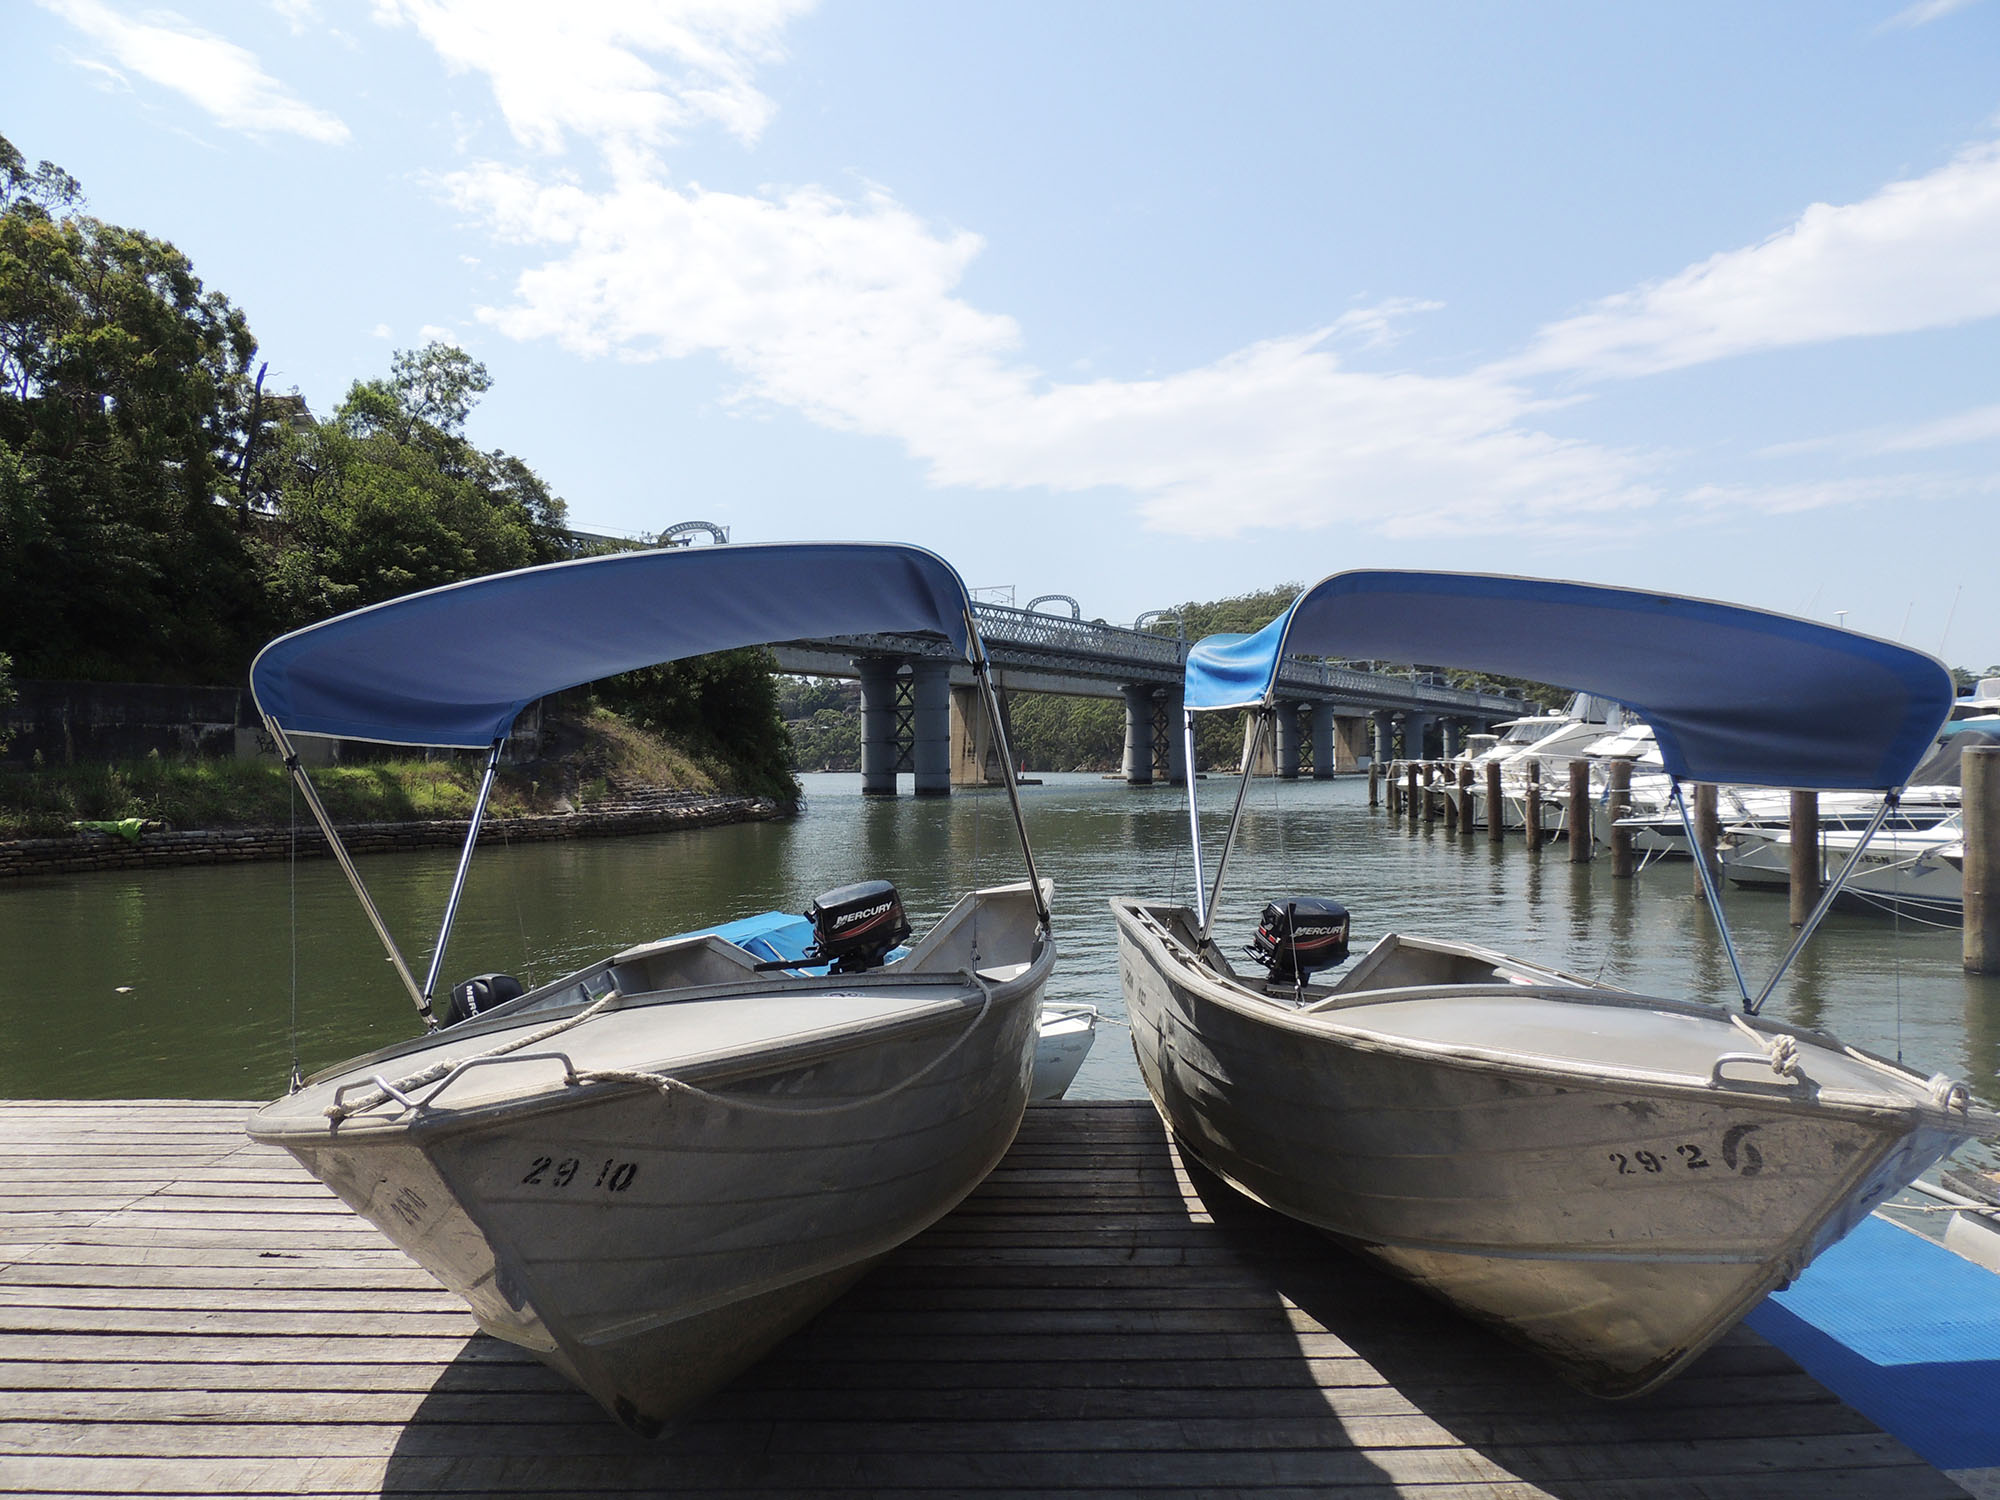 Photo of Hire Boats at Como Marina, Runabout Boat Pictured